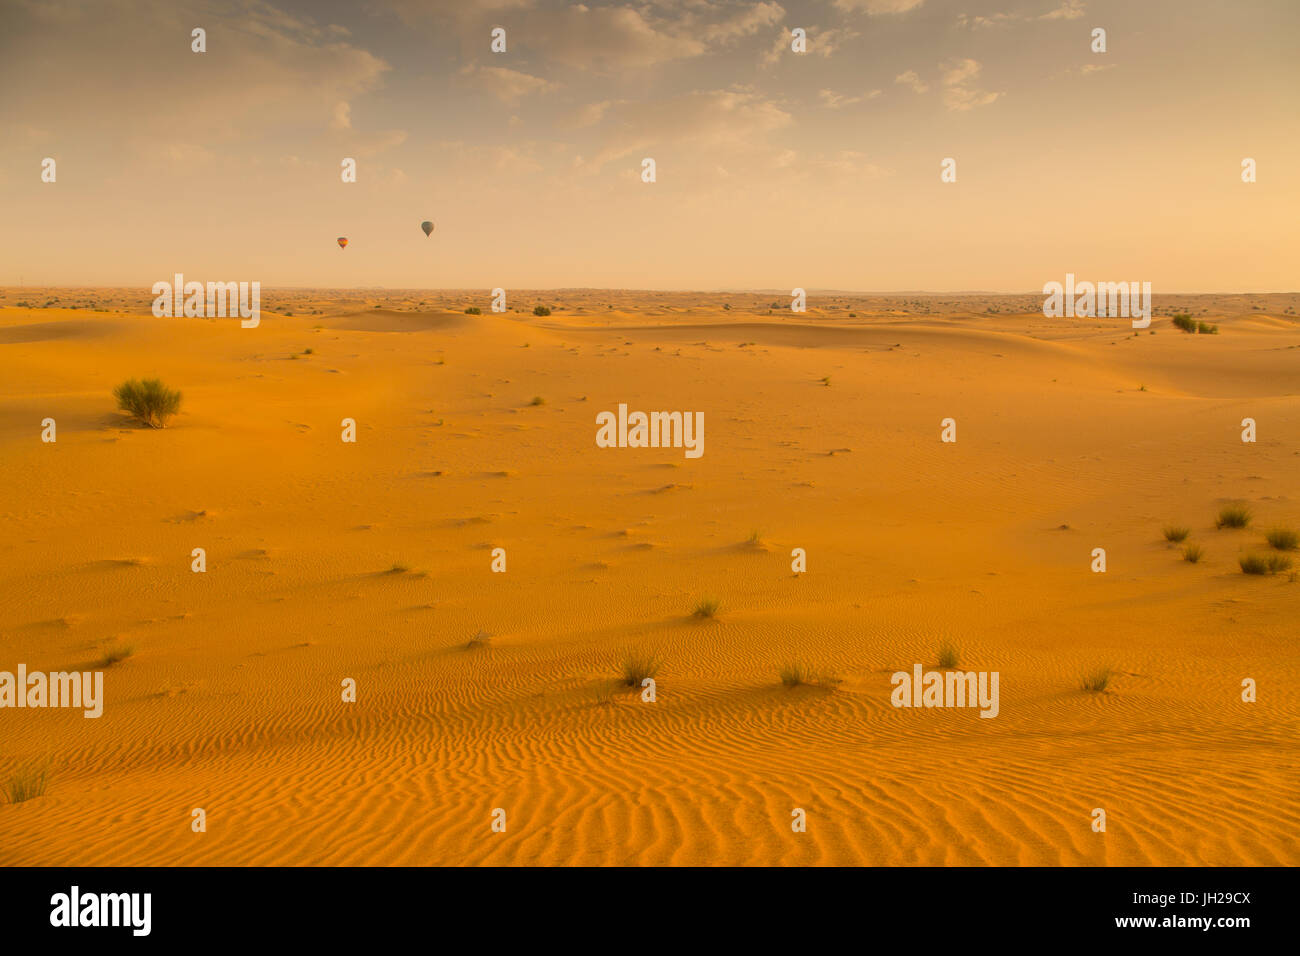 Hot air balloons over sand dunes at sunrise in the Dubai Desert, Dubai, United Arab Emirates, Middle East - Stock Image